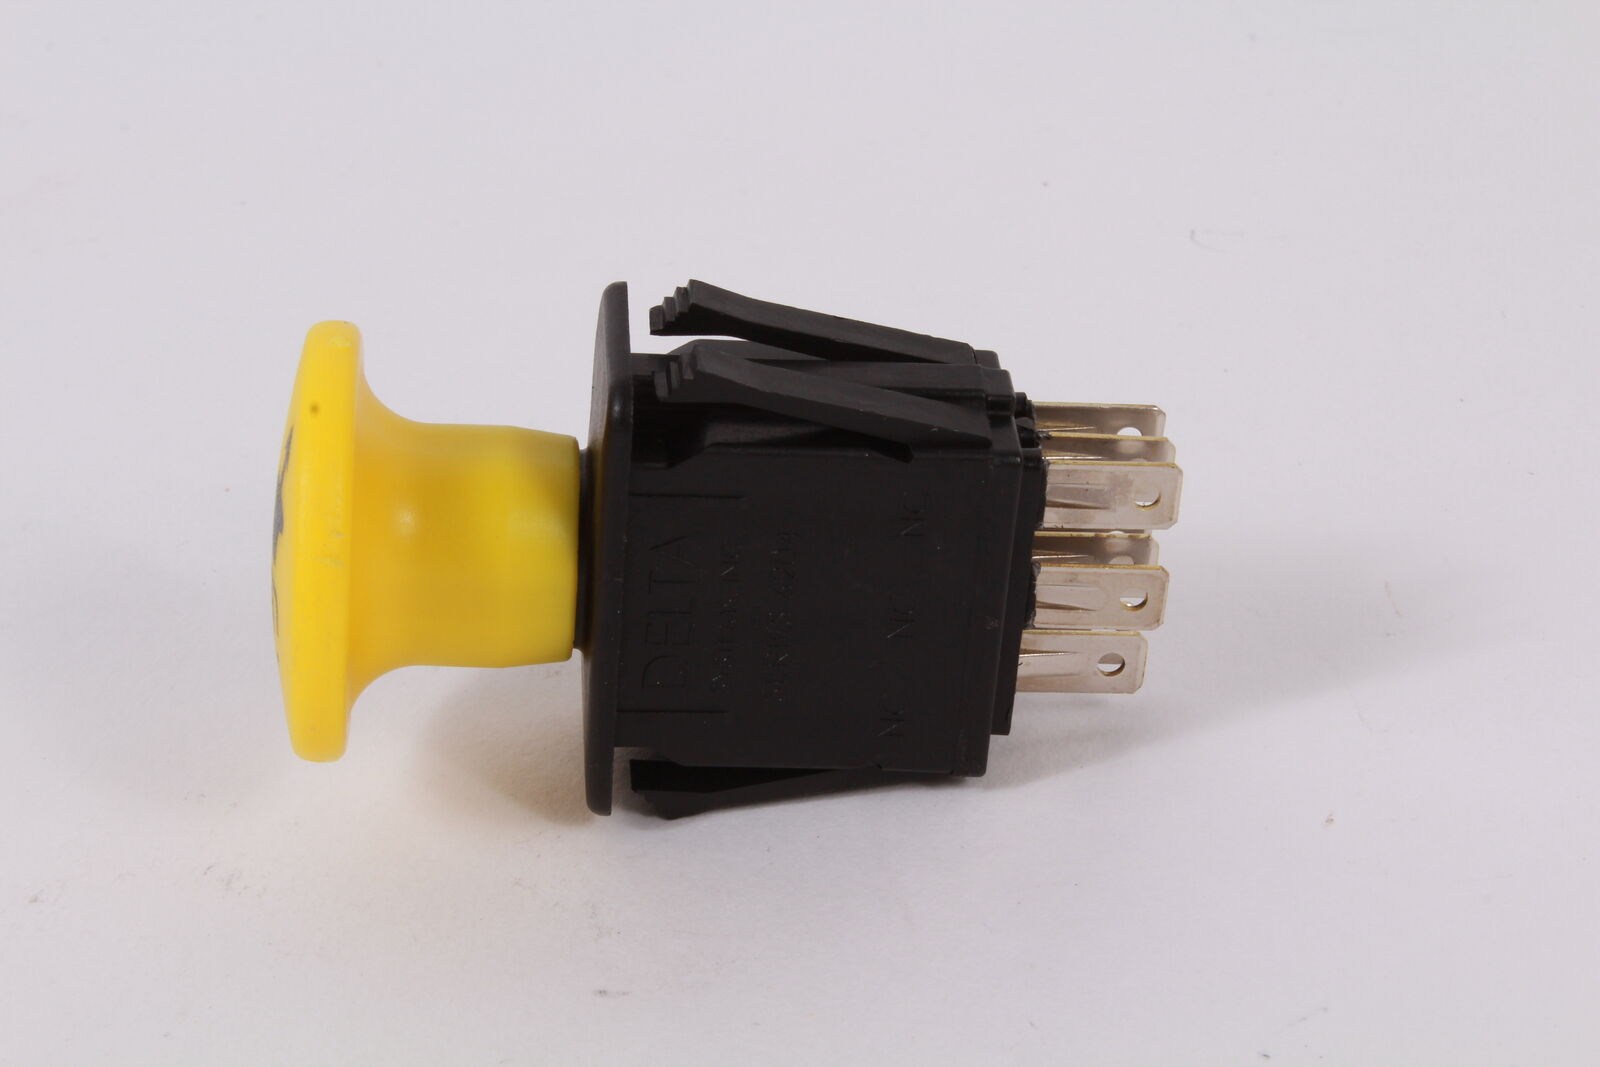 New Genuine OEM PTO SWITCH for Simplicity 5022180 5022180SM 7075132 Lawn Mower